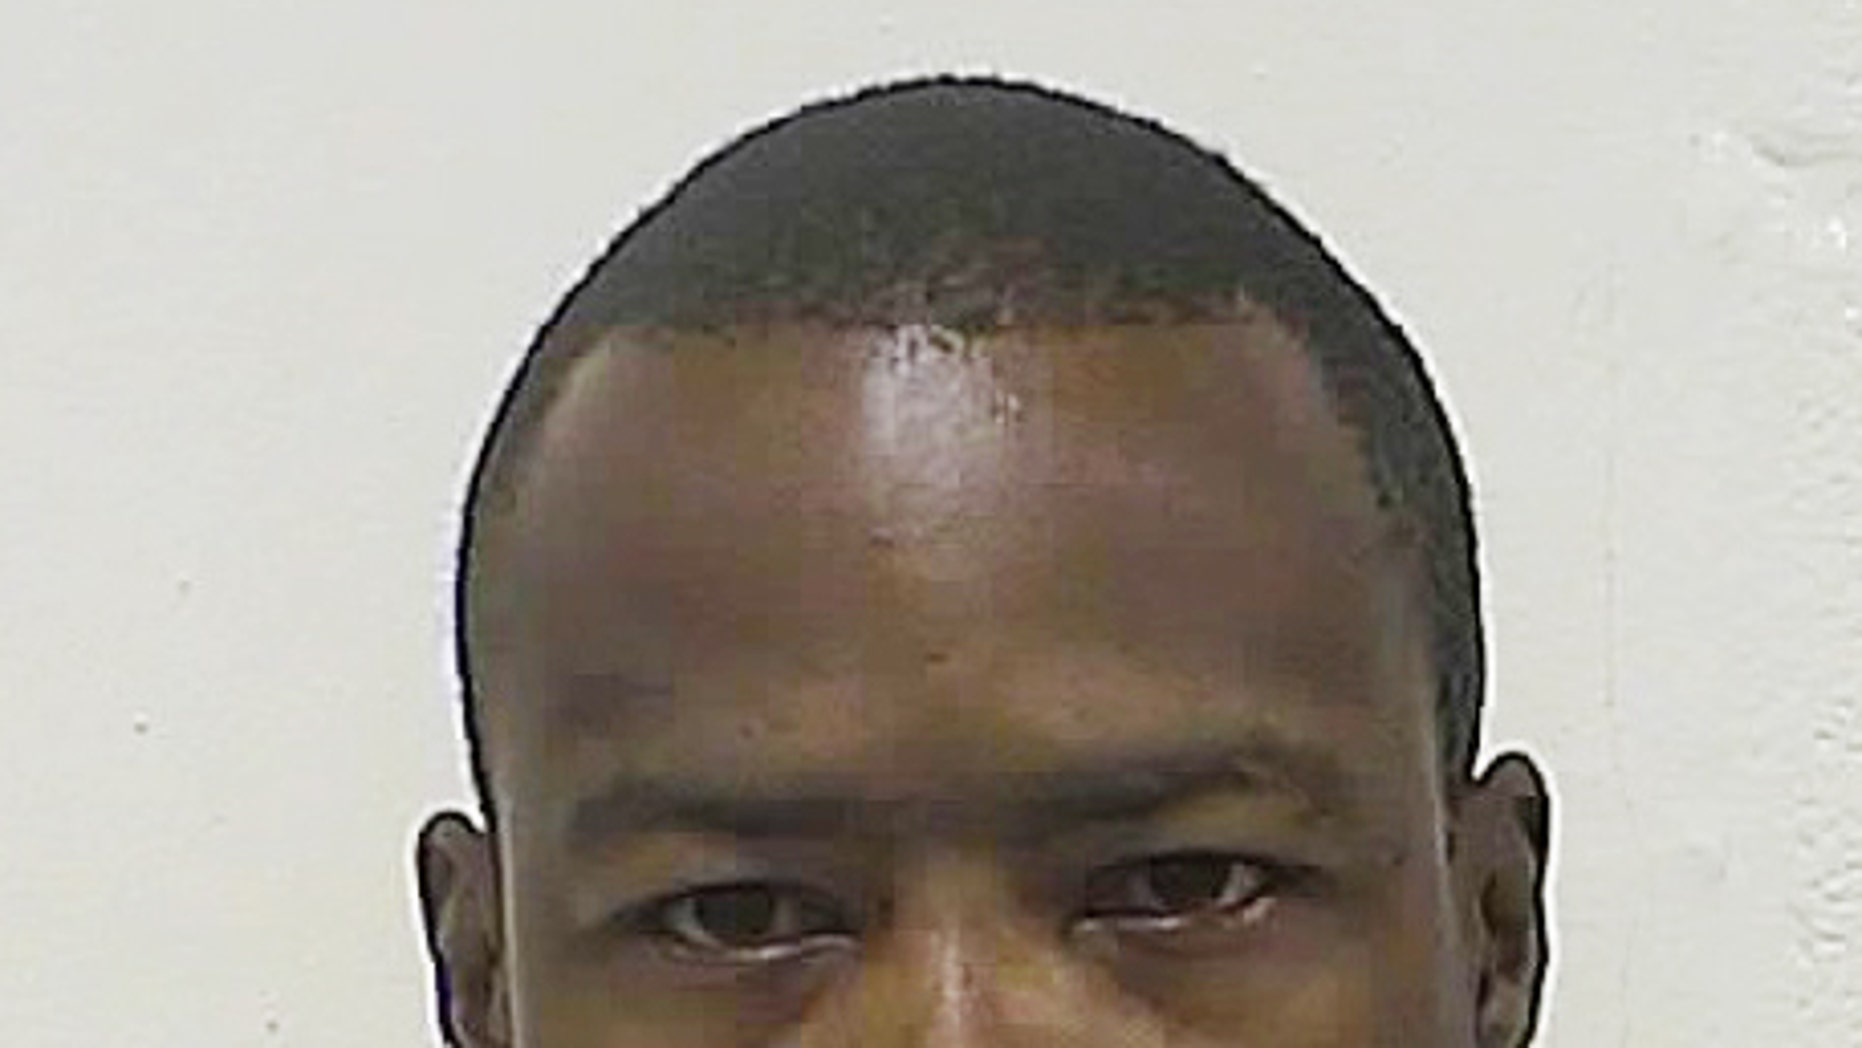 """Darrell Brown is shown in a police booking photo taken July 27, 2013, by the Washington County, Maryland, Sheriff's Office. Brown died April 16, 2015, after Hagerstown, Md., police shocked him with a Taser.  Five Hagerstown police officers involved in the stun-gun-related death of Brown, a home invasion suspect won't be criminally charged, authorities said Thursday, Aug. 6, citing an autopsy report's finding that the man died from drug-induced """"excited delirium in the setting of police restraint.""""(Washington County Sheriff's Office via AP)."""